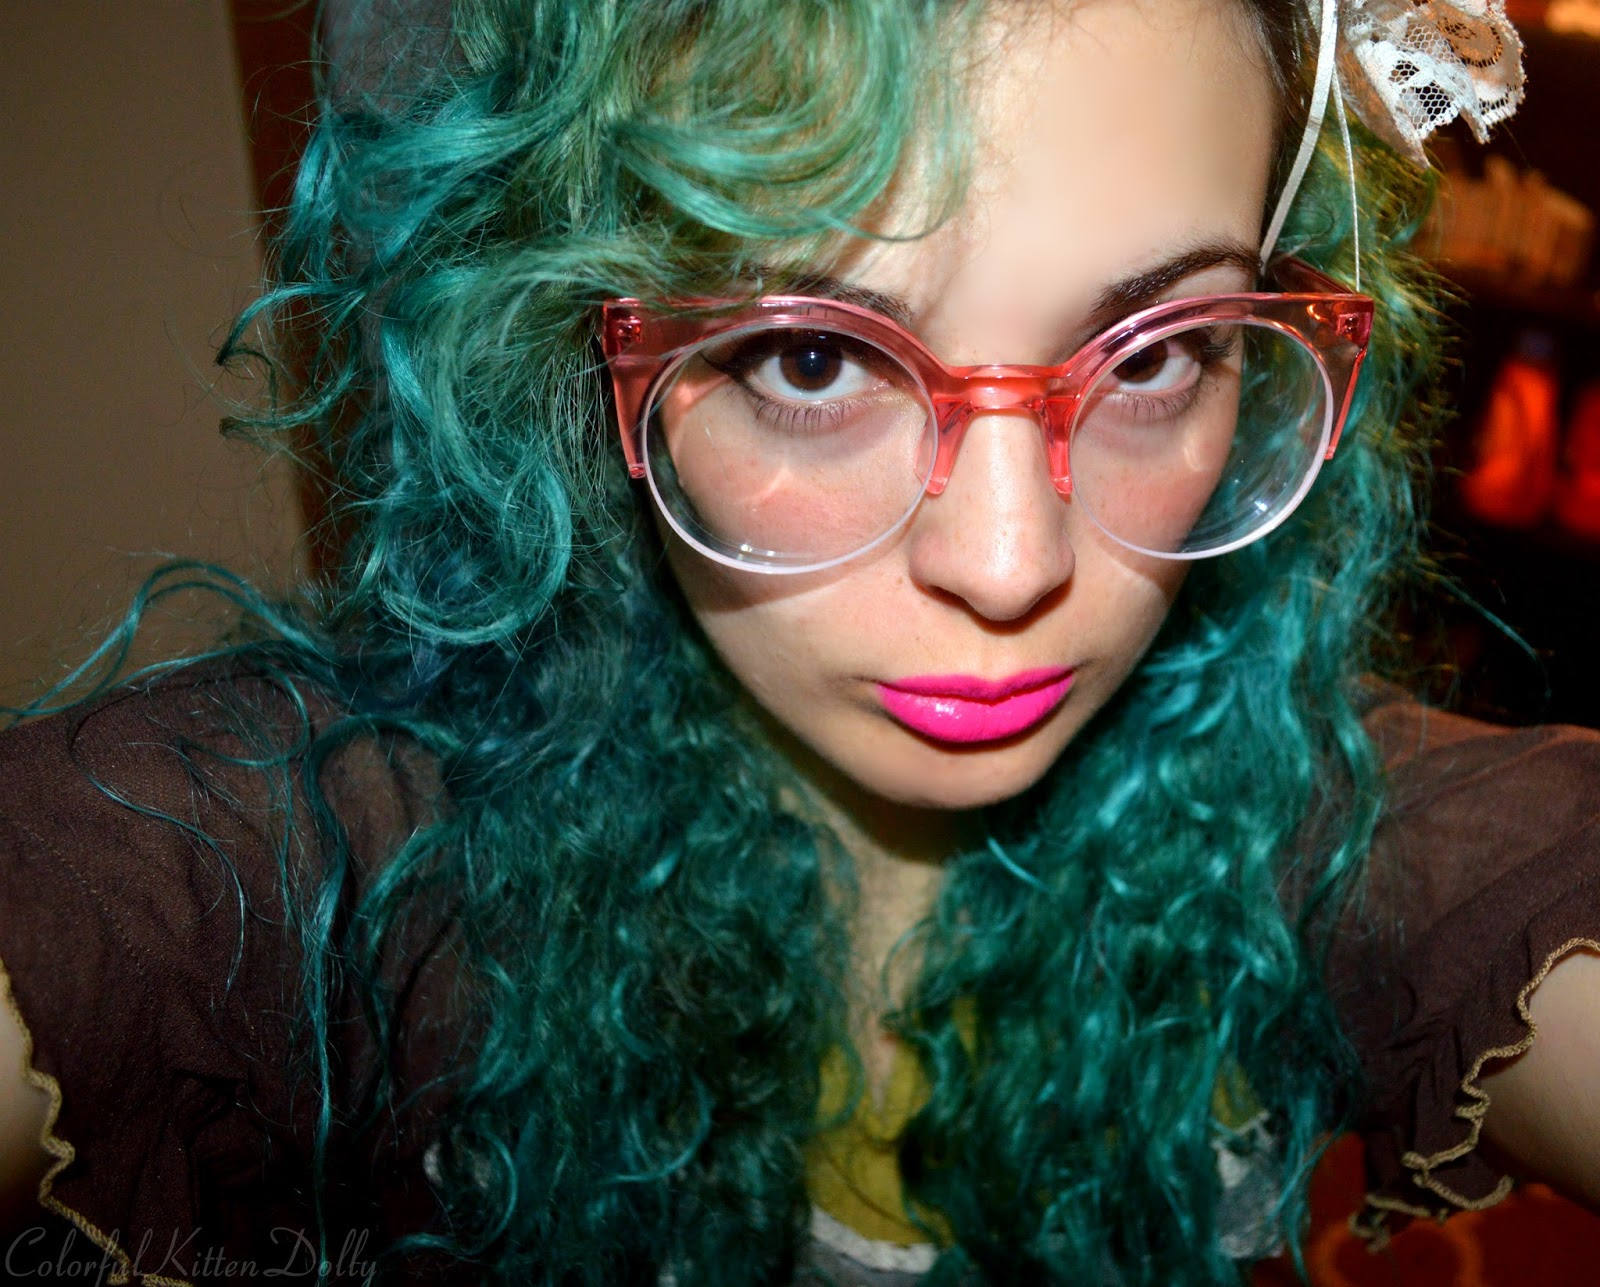 Glasses Zenni Optical Good : ColorfulKittenDolly~: Review: Zenni Optical Glasses